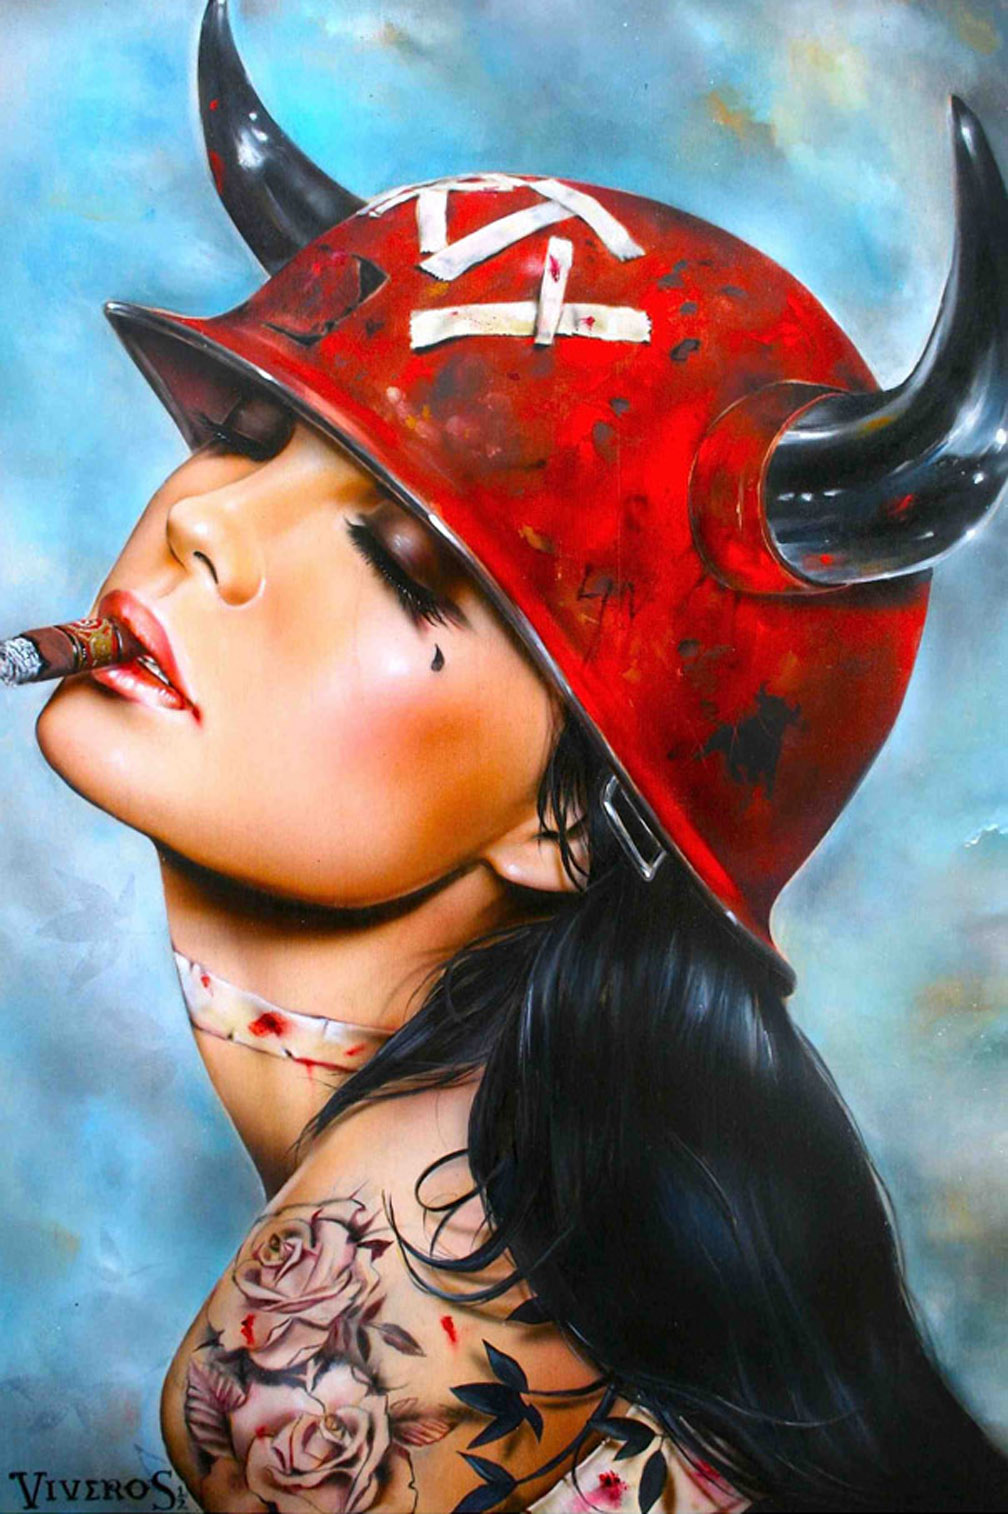 brian_viveros_female_paintings_03